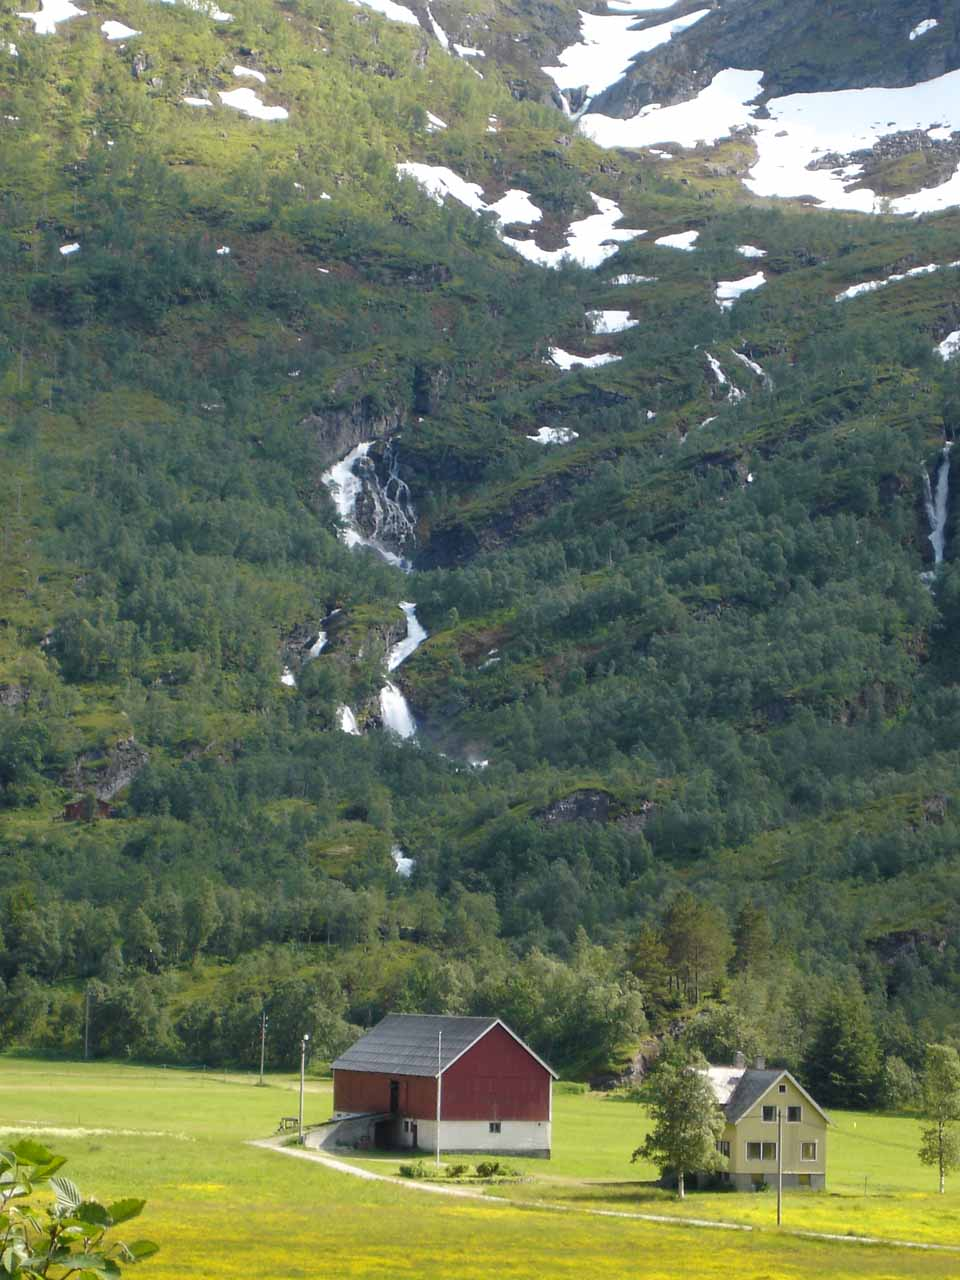 Looking towards some more mountain cascades fronted by cabins seen along Road 63 near Kvanndalsfossen